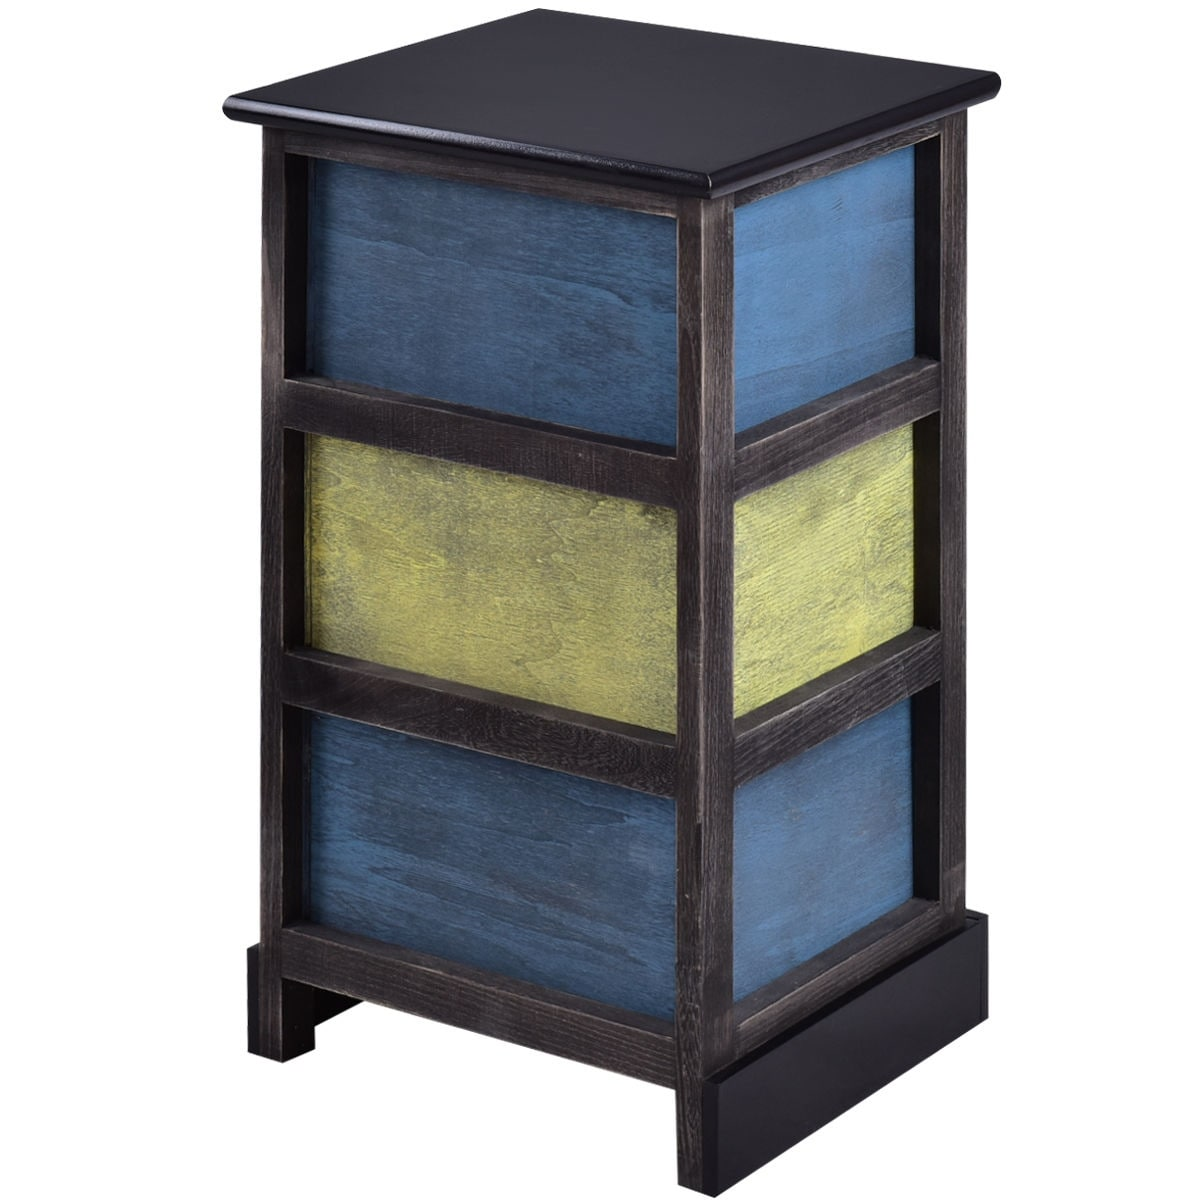 Shop costway stylish wood bedside table nightstand cabinet furniture shop costway stylish wood bedside table nightstand cabinet furniture 3 storage drawer free shipping today overstock 18225417 watchthetrailerfo